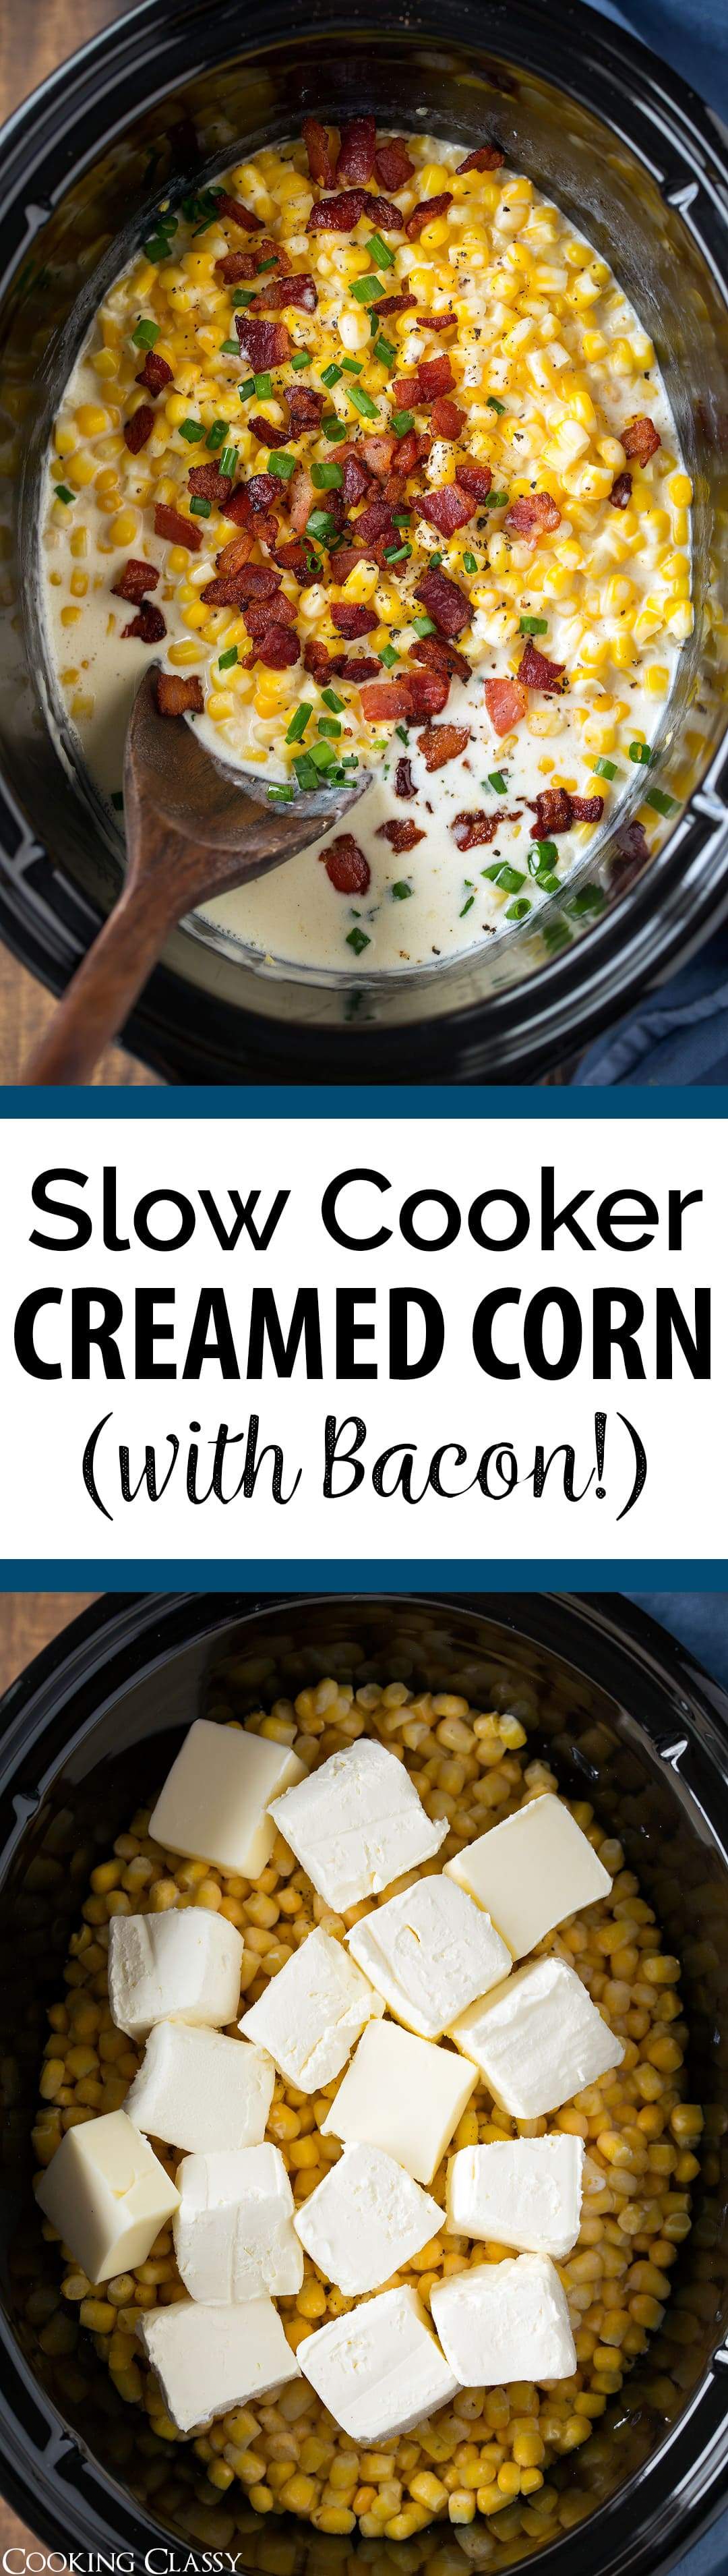 Slow Cooker Creamed Corn (with Bacon!) - The best creamed corn recipe! So easy to make and made extra delicious with bacon! A comforting side dish that's perfect for holidays.